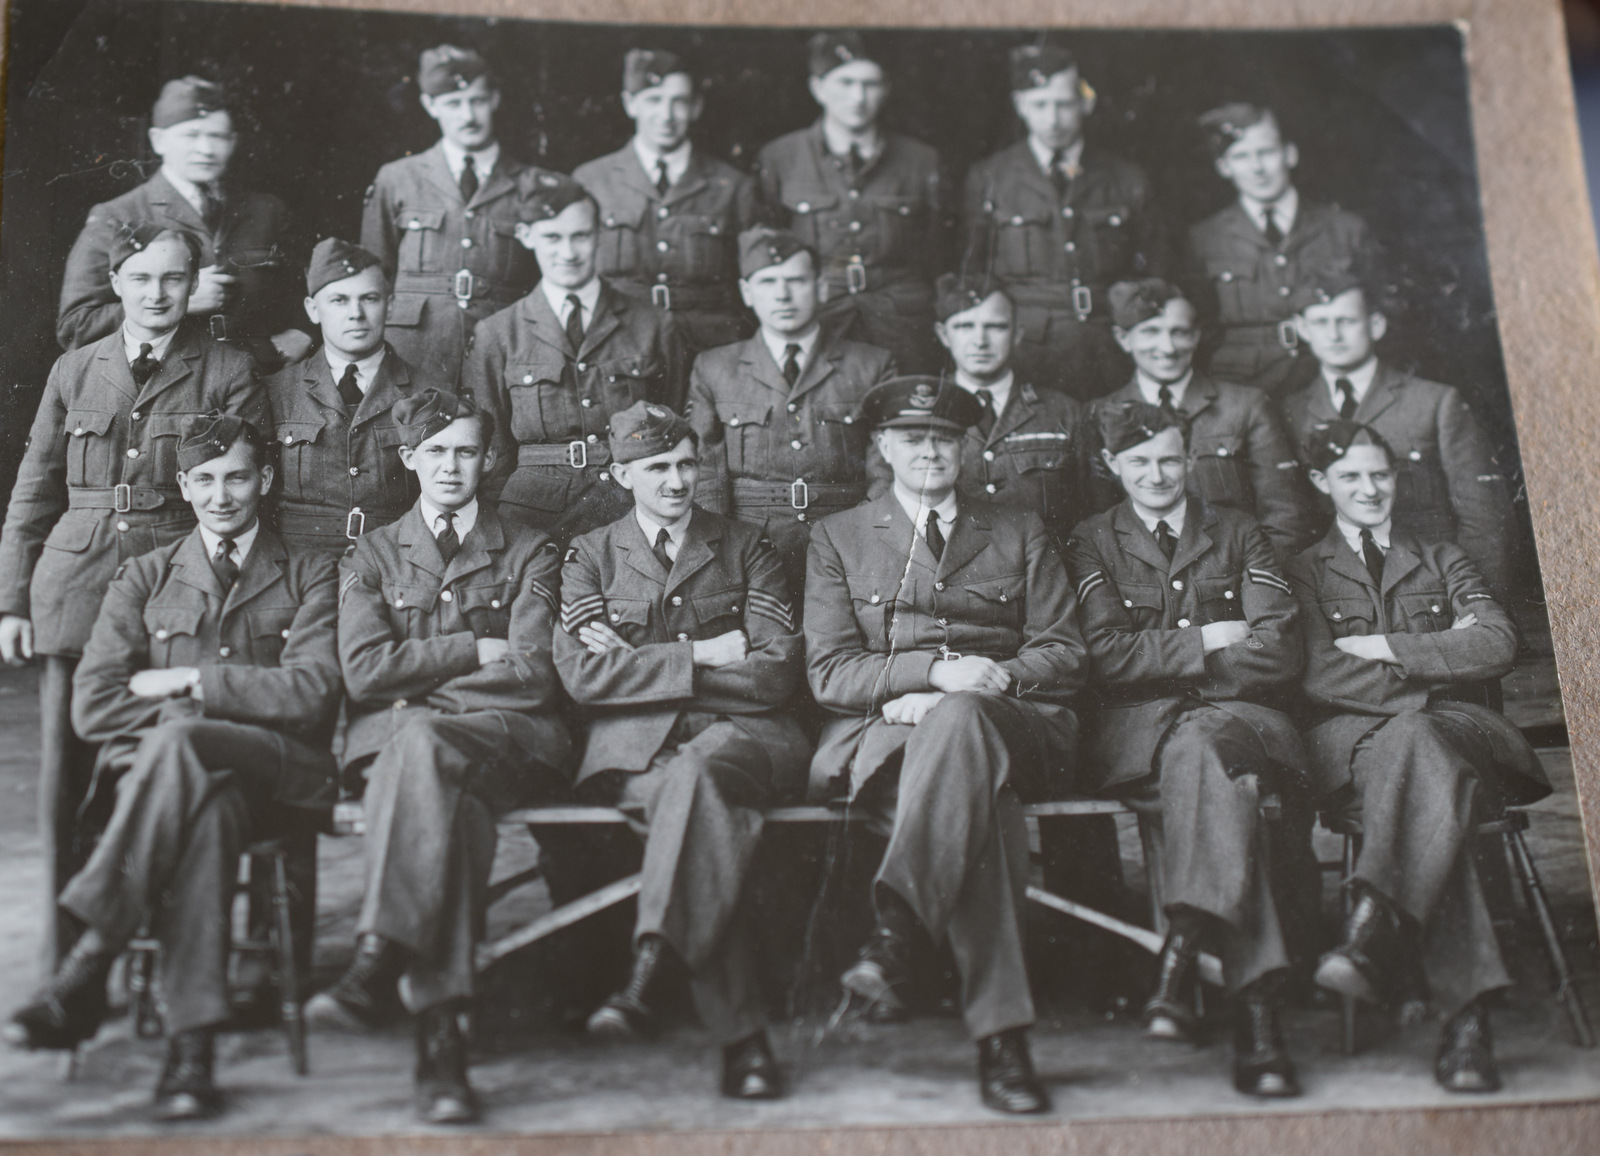 WW2 RAF Photo Album And Badges, Medals - Image 2 of 9